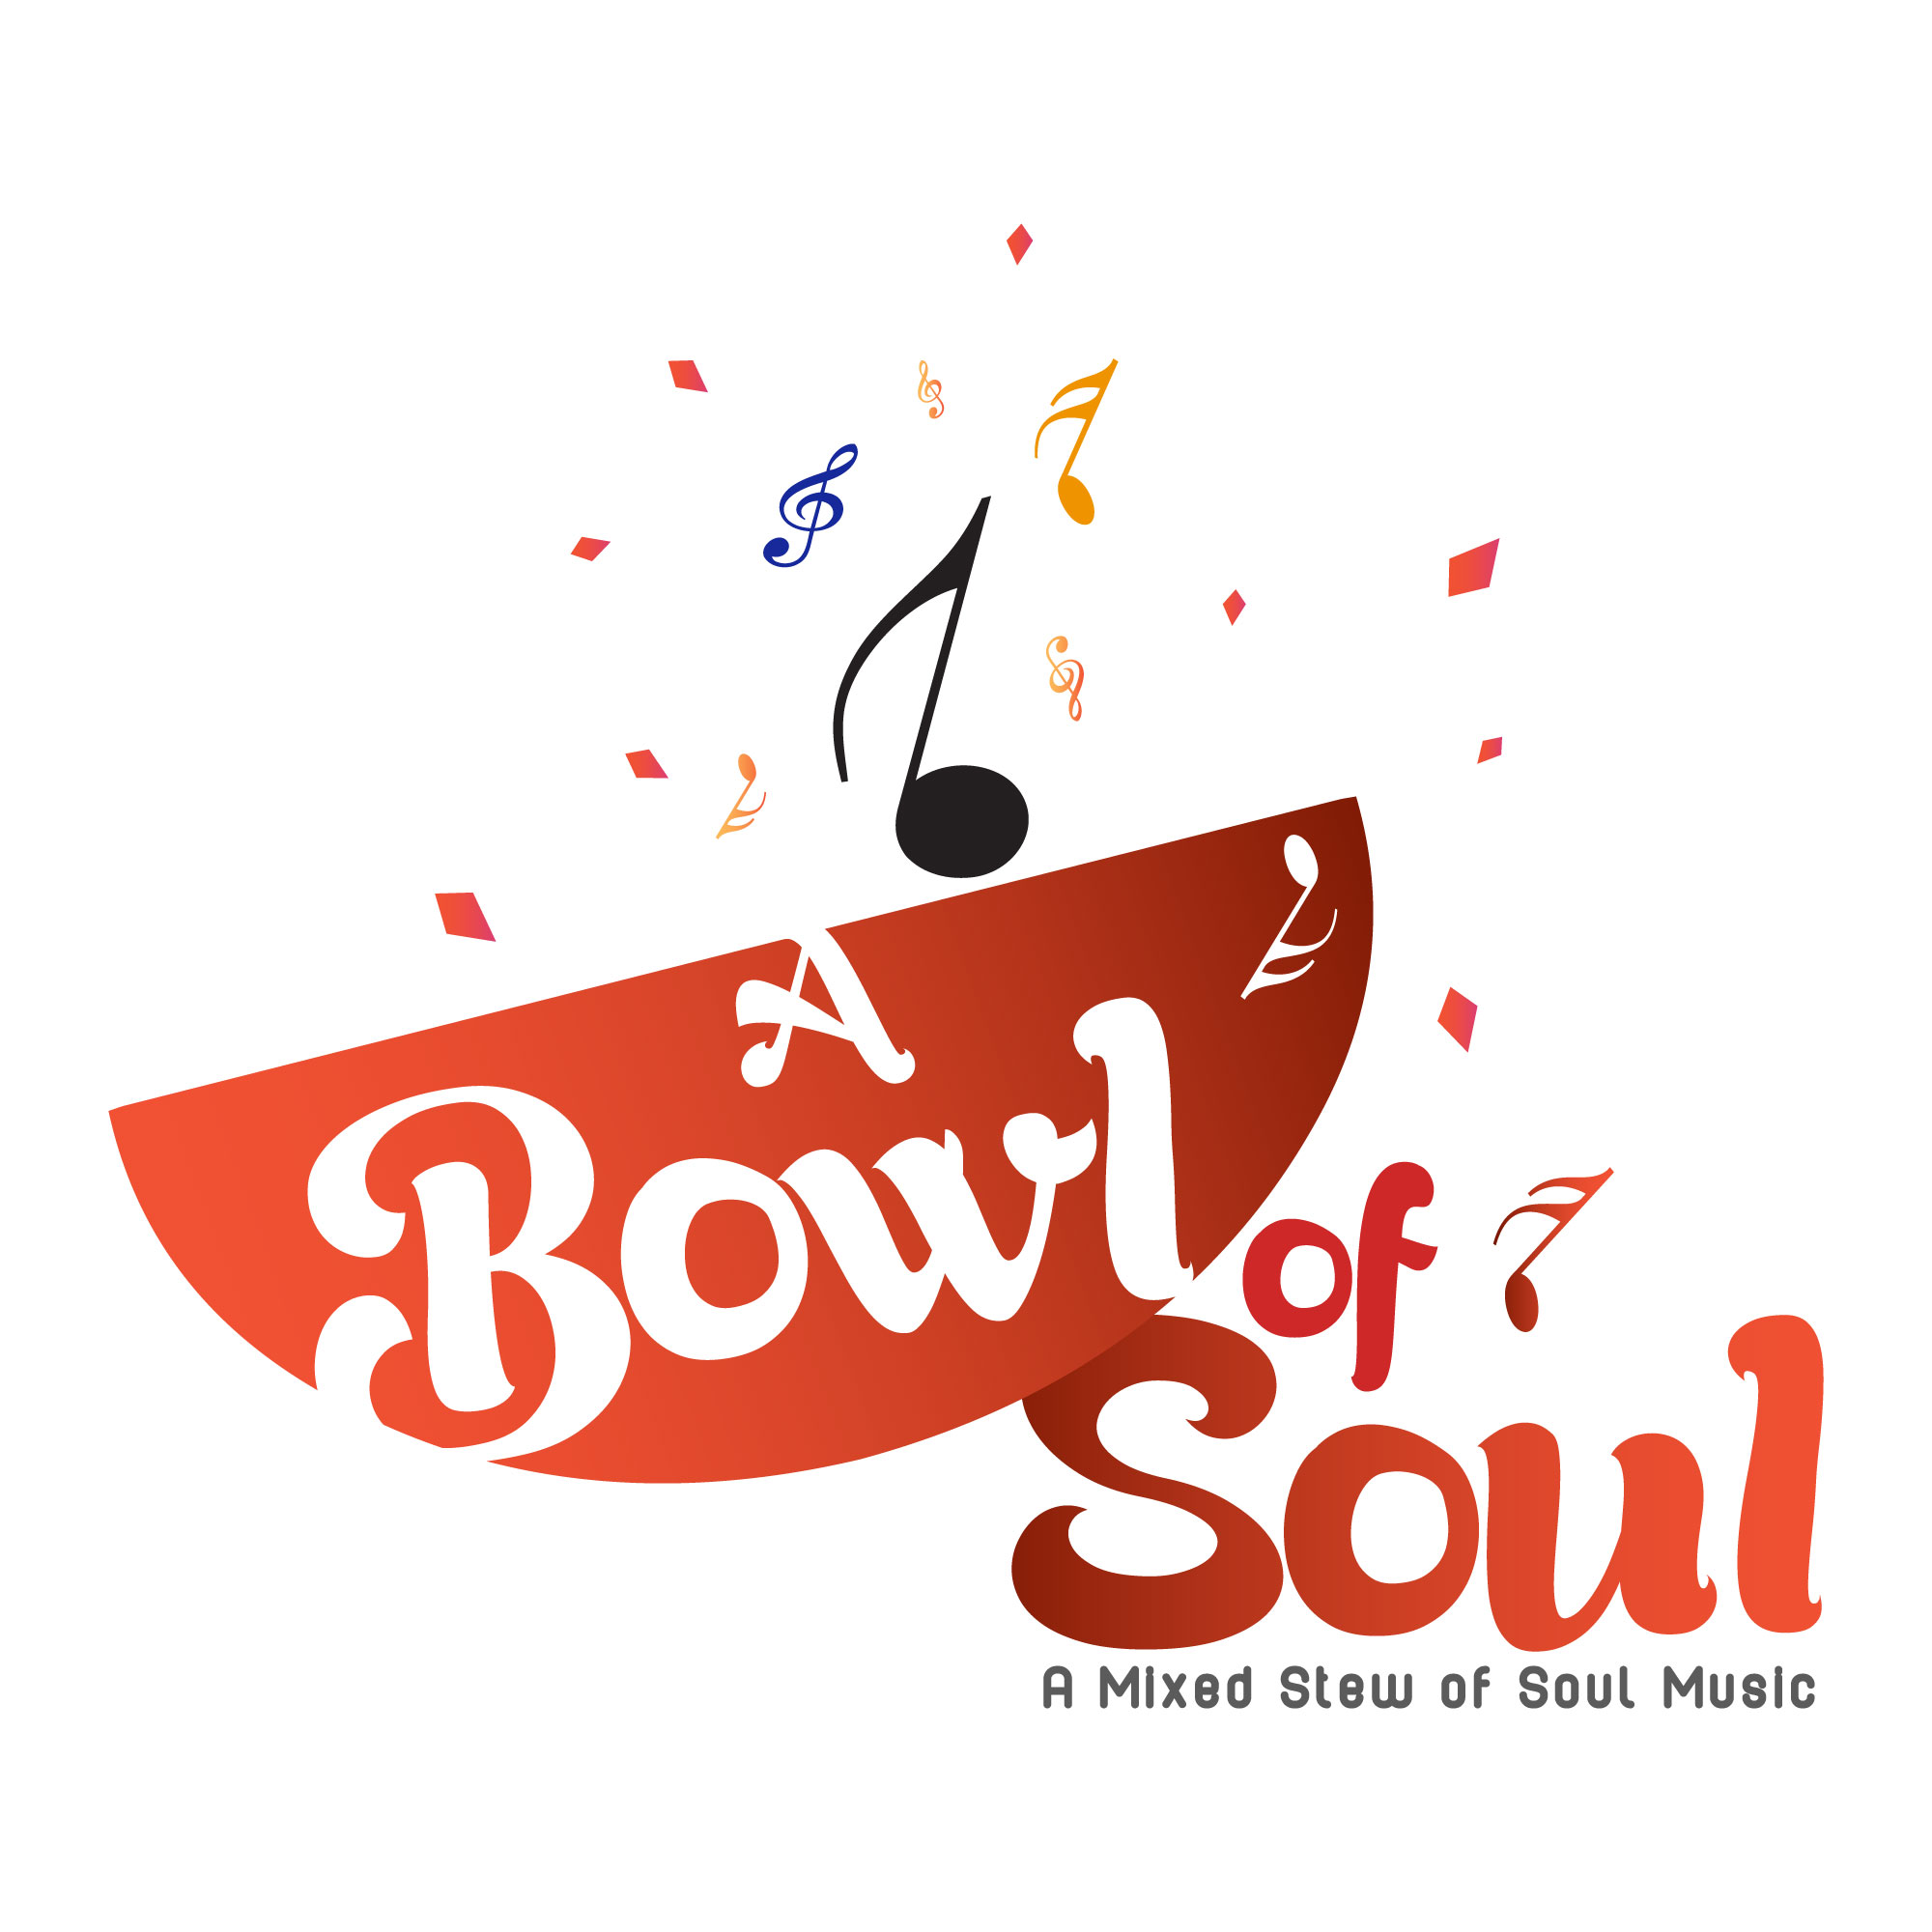 A Bowl of Soul A Mixed Stew of Soul Music Broadcast - 01-01-2021 - Happy New Year show art